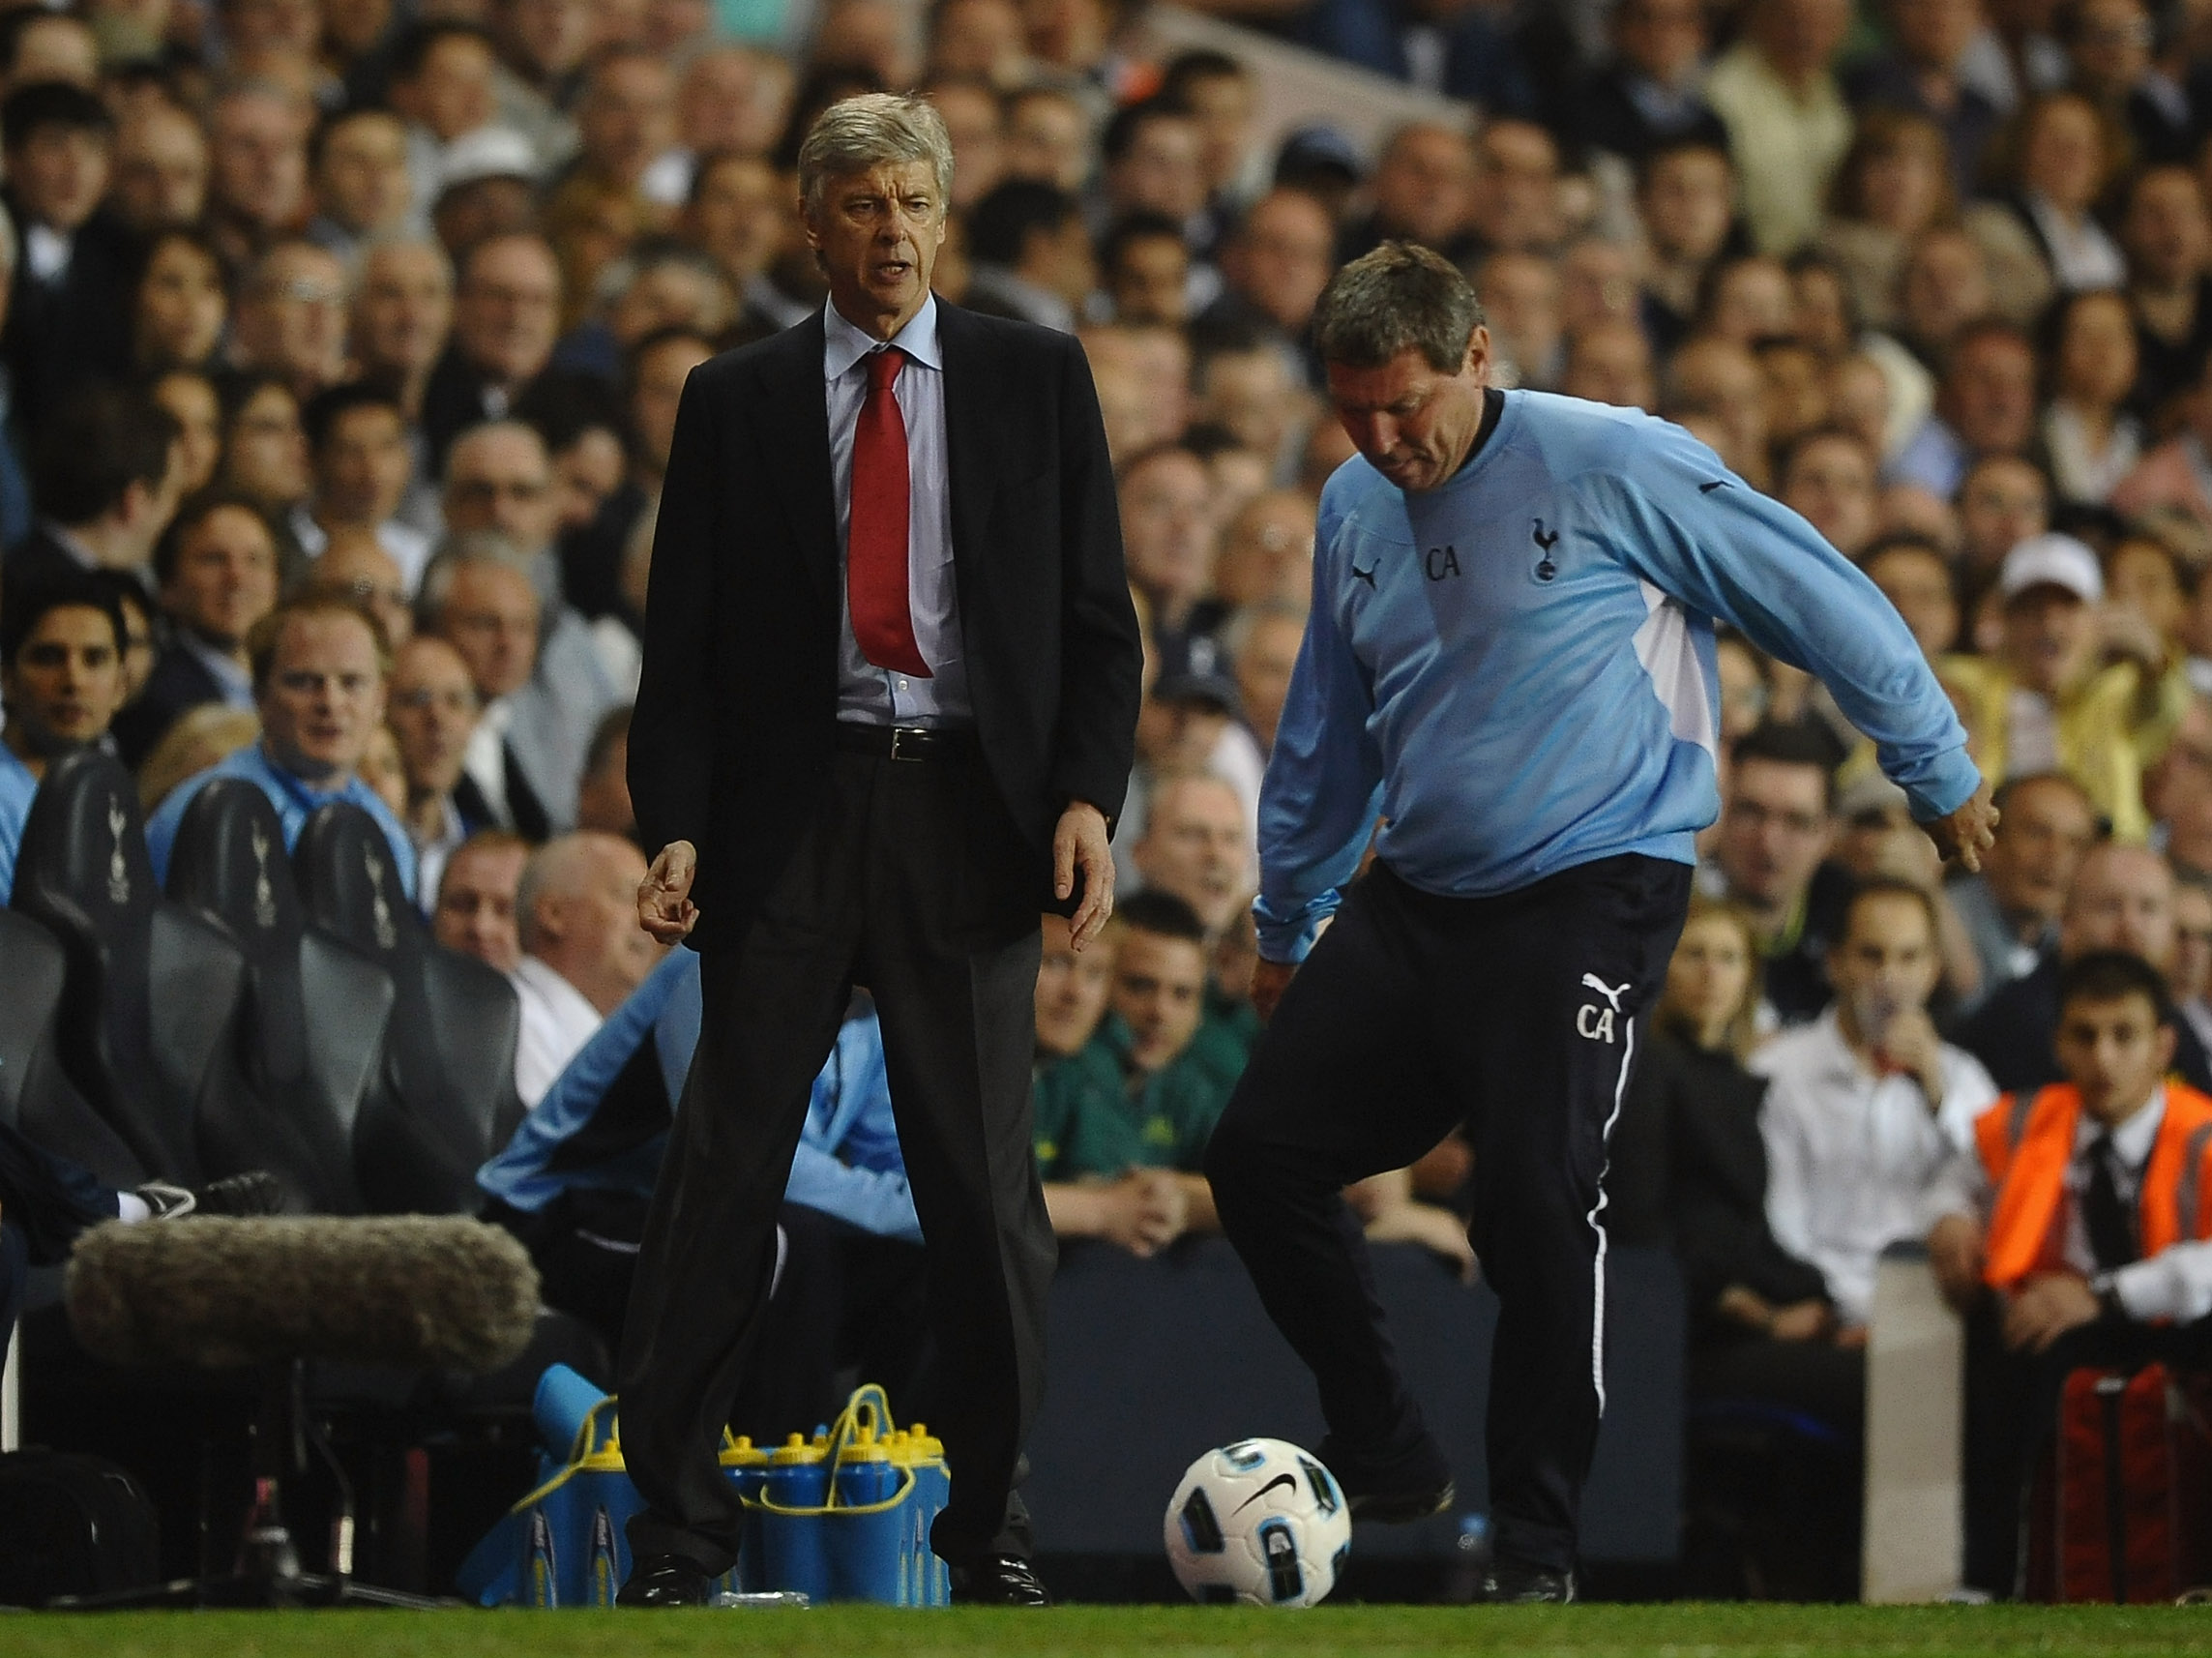 LONDON, ENGLAND - APRIL 20:  Spurs coach, Clive Allen kicks the match ball as Arsenal manager Arsene Wenger looks on during the Barclays Premier League match between Tottenham Hotspur and Arsenal at White Hart Lane on April 20, 2011 in London, England.  (